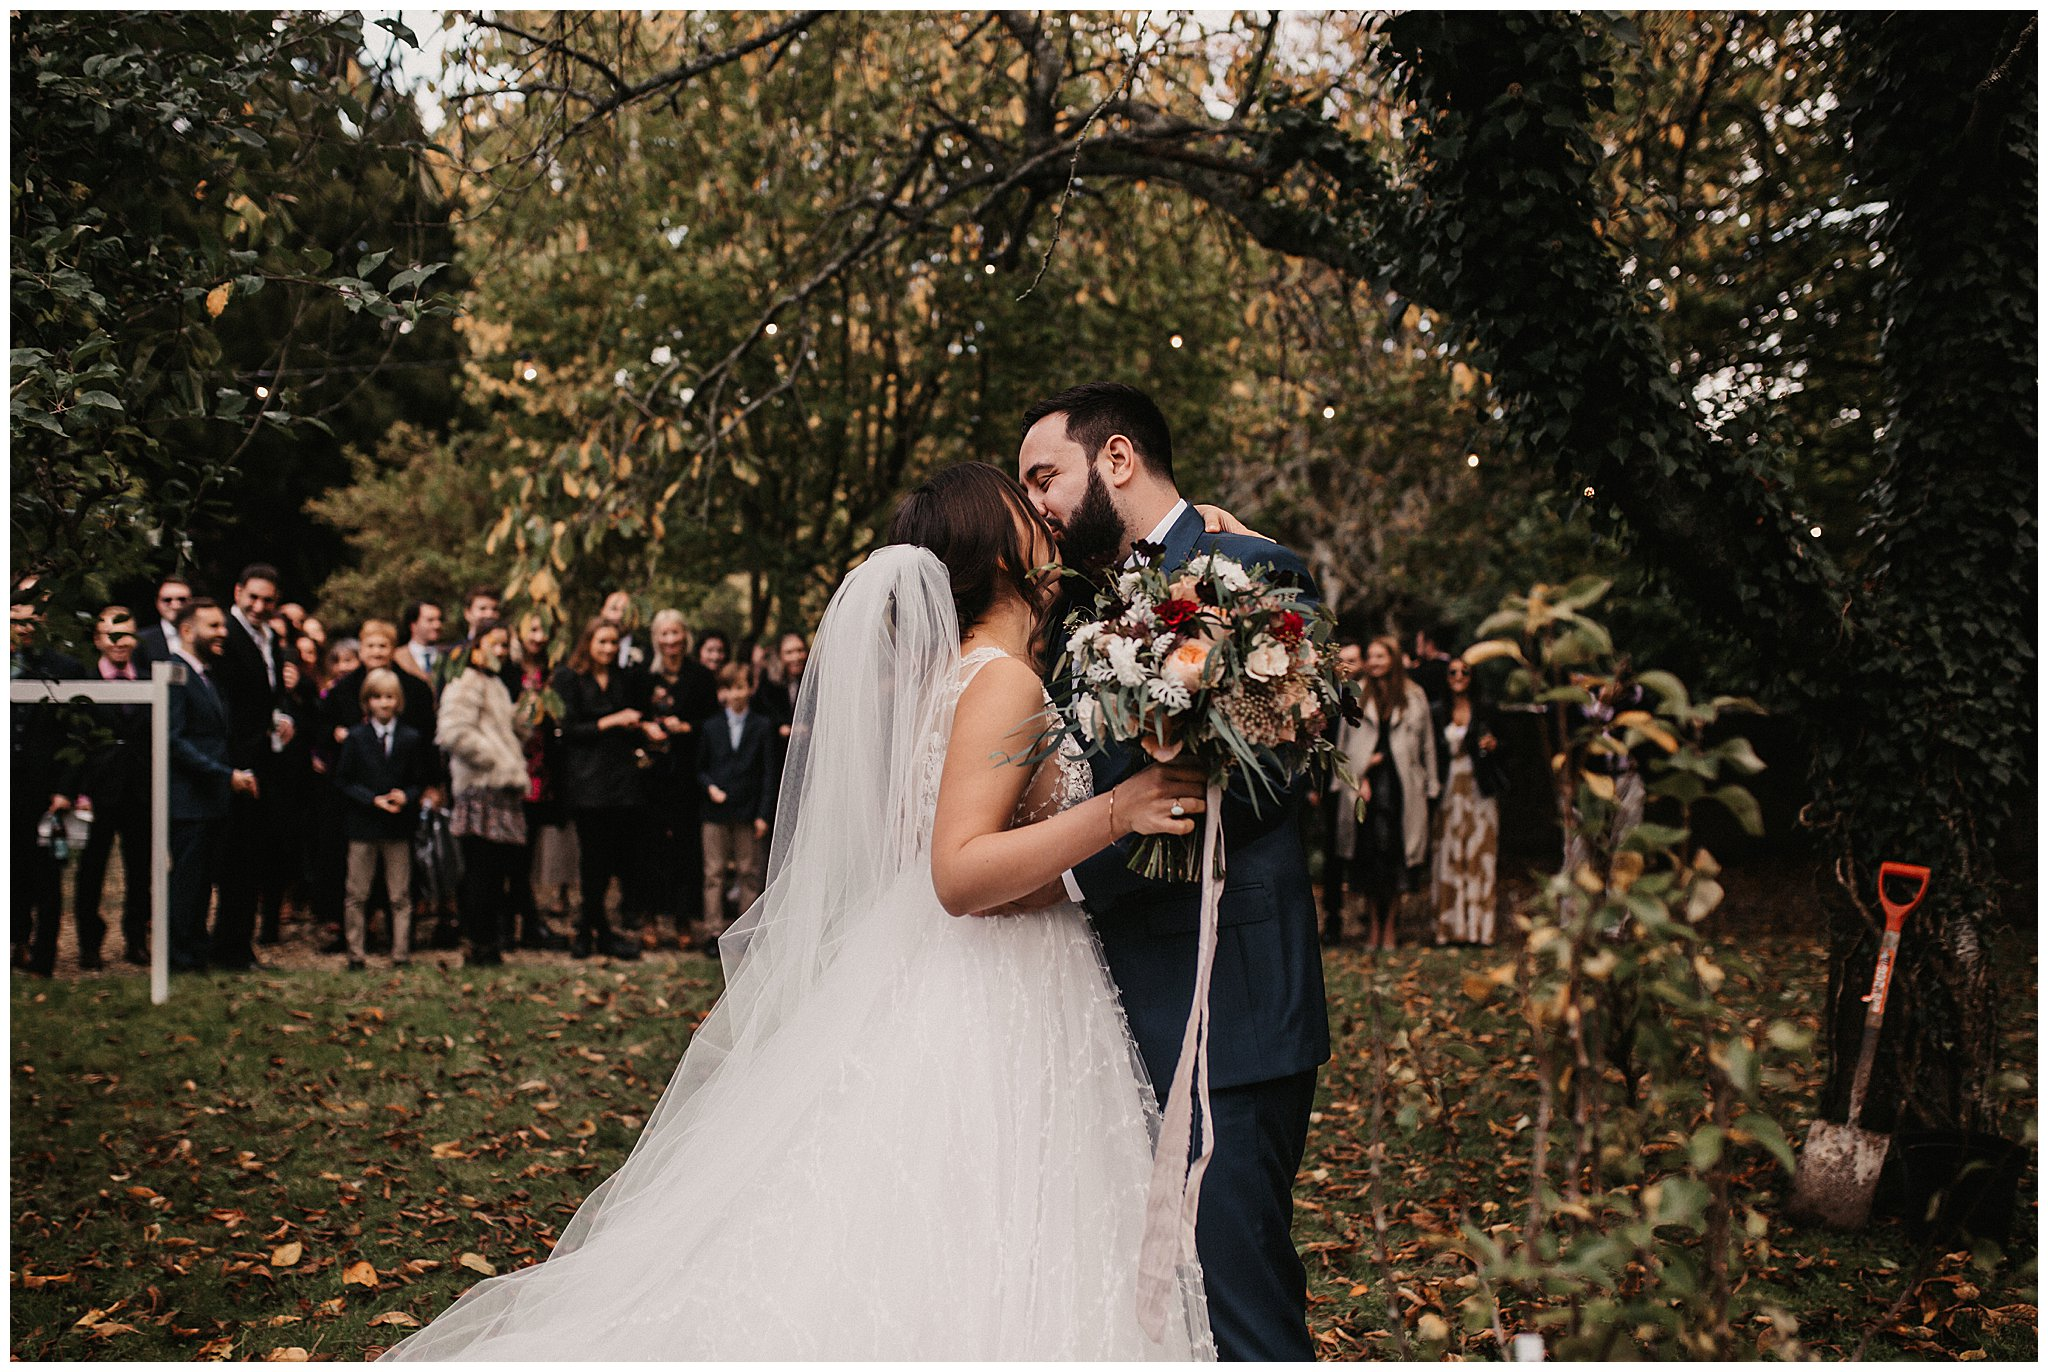 Max & Ksenia Autumnal Wiltshire Wedding-300.jpg